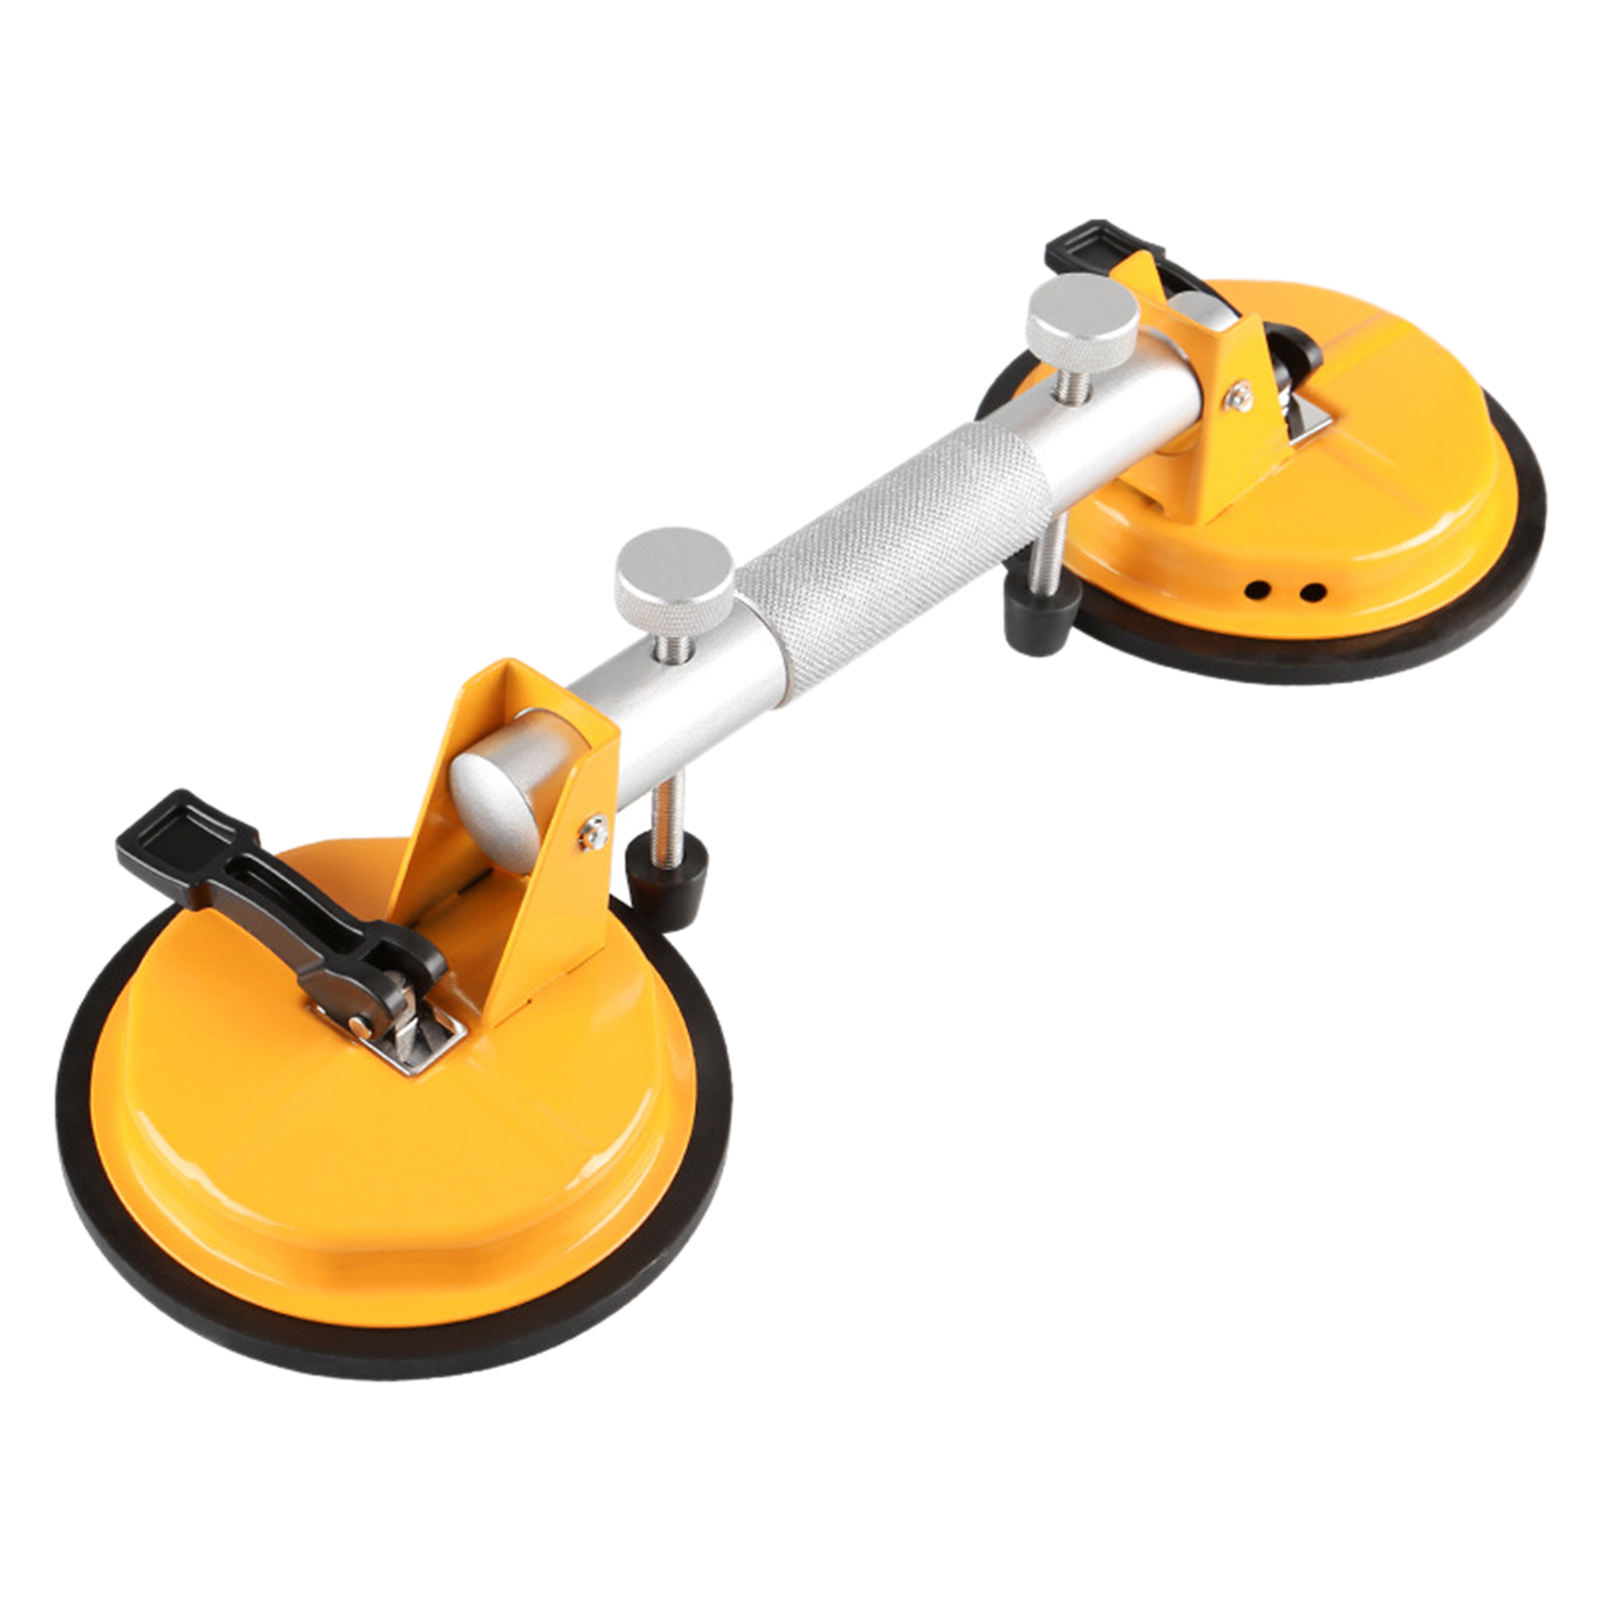 Gripper For Moving Double Handle Suction Cup Dent Home Heavy Duty Hand Tools Puller Glass Lifter Easy Use Portable Tiles Mirror